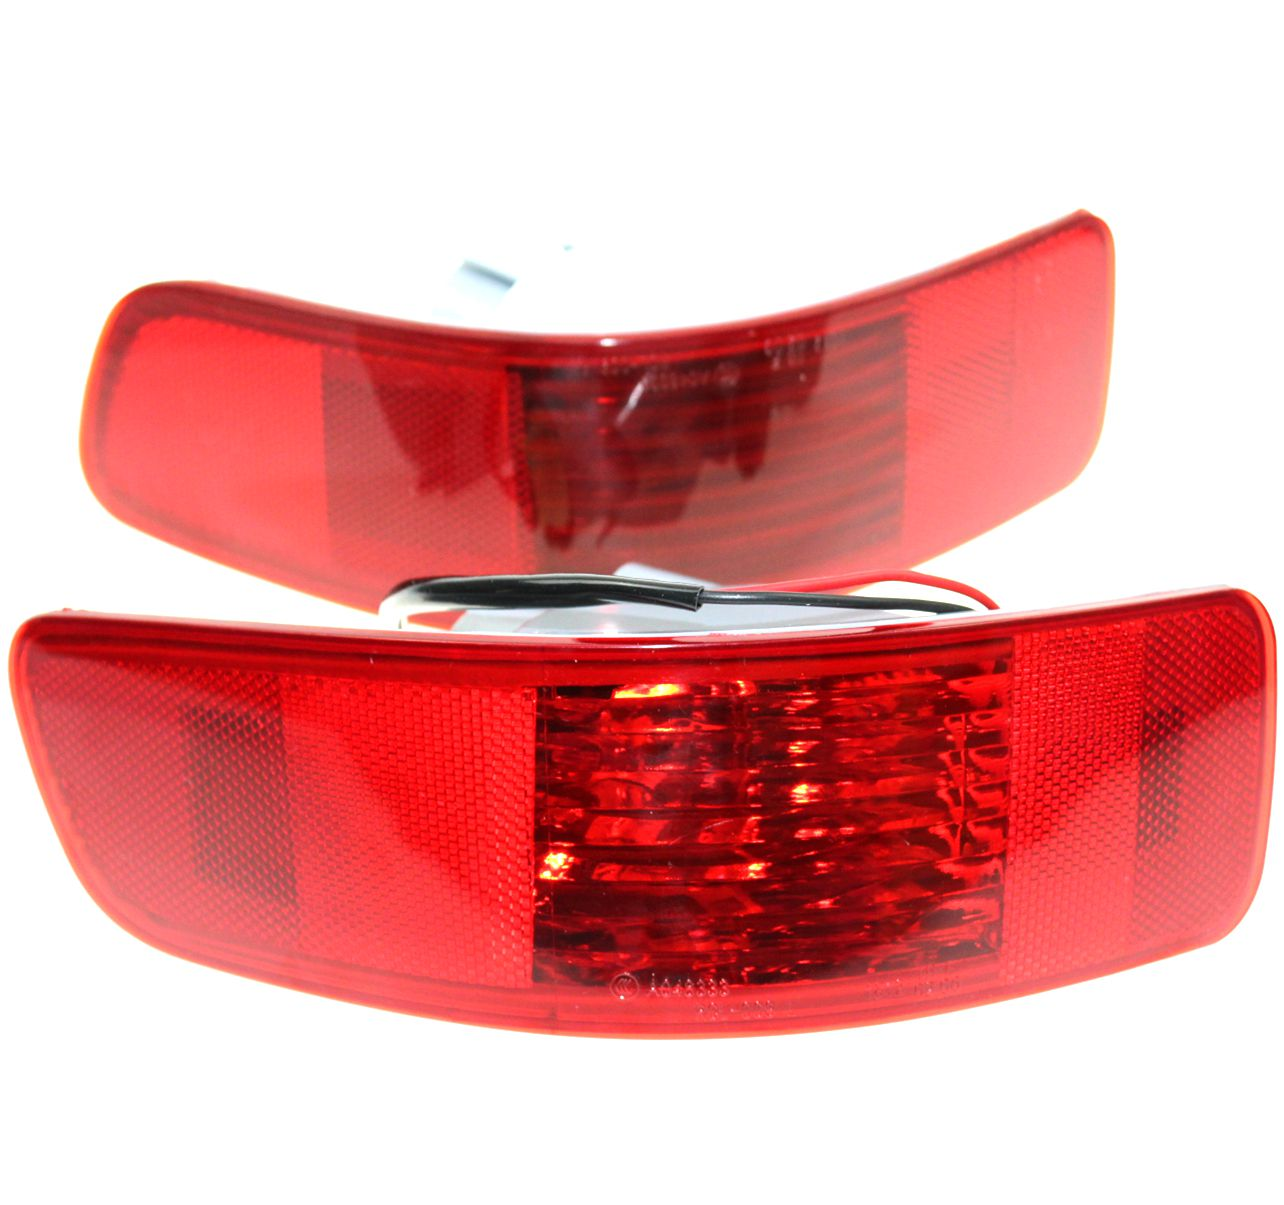 LARBLL Pair Rear Bumper Right Left Tail Fog Light Lamp Fit for Mitsubishi Outlander PEUGEOT 4007 2007-2012 CITROEN C-Crosser rear fog lamp spare tire cover tail bumper light fit for mitsubishi pajero shogun v87 v93 v97 2007 2008 2009 2010 2011 2012 2015